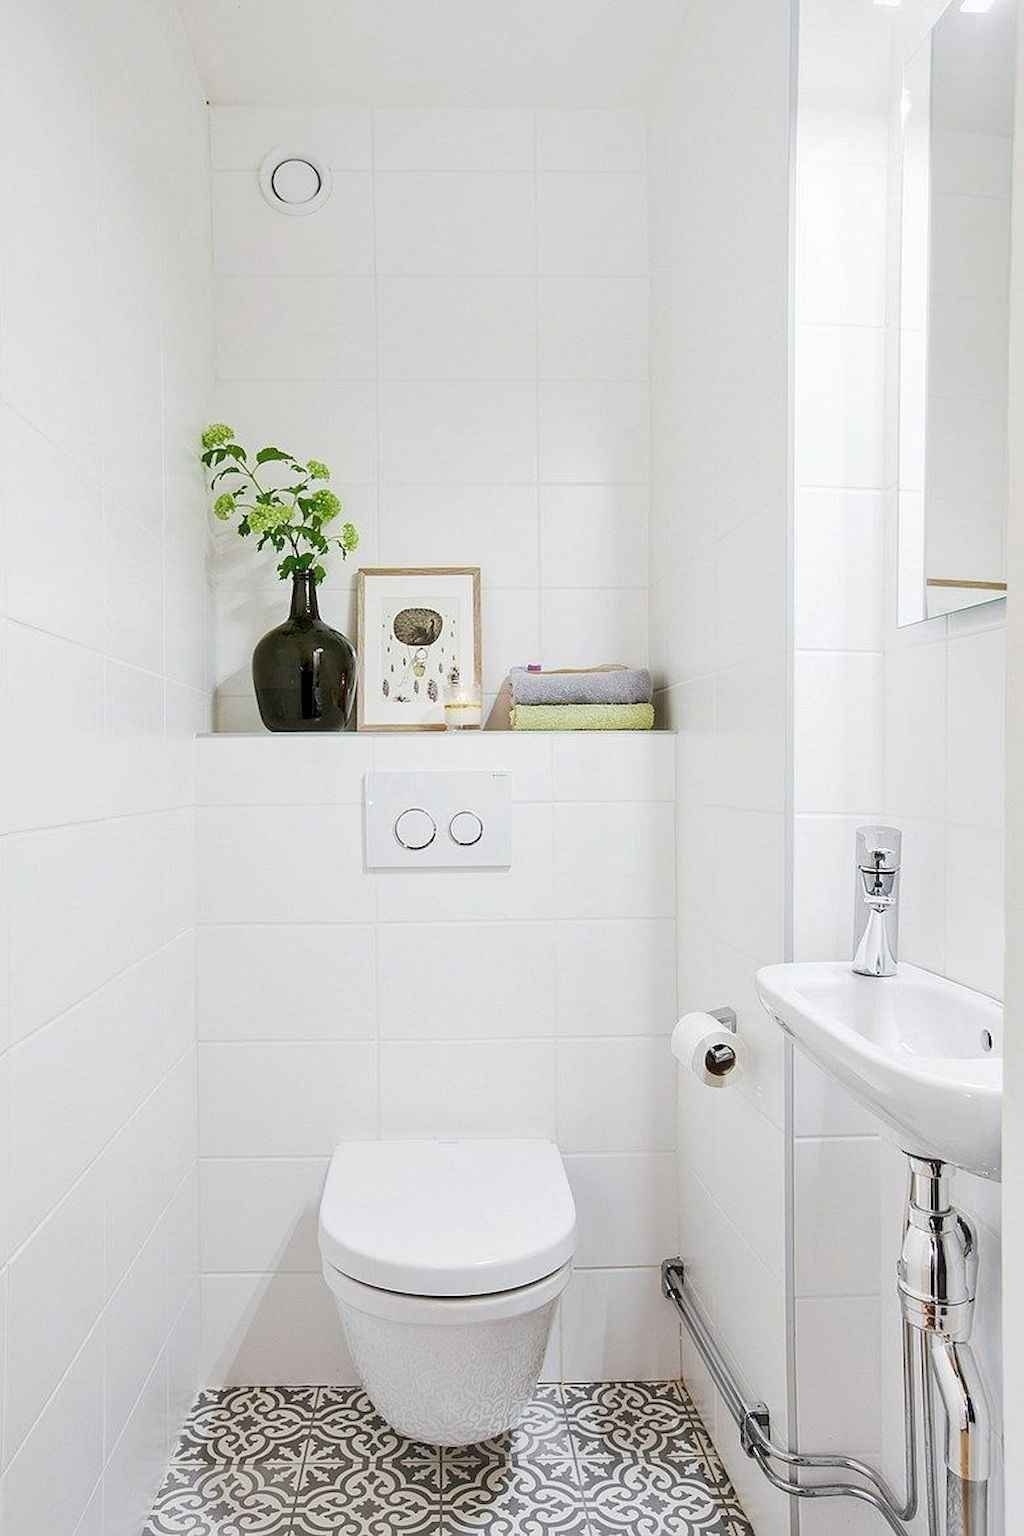 Toilet Design For Small Space Plan Elegant Contemporary Small